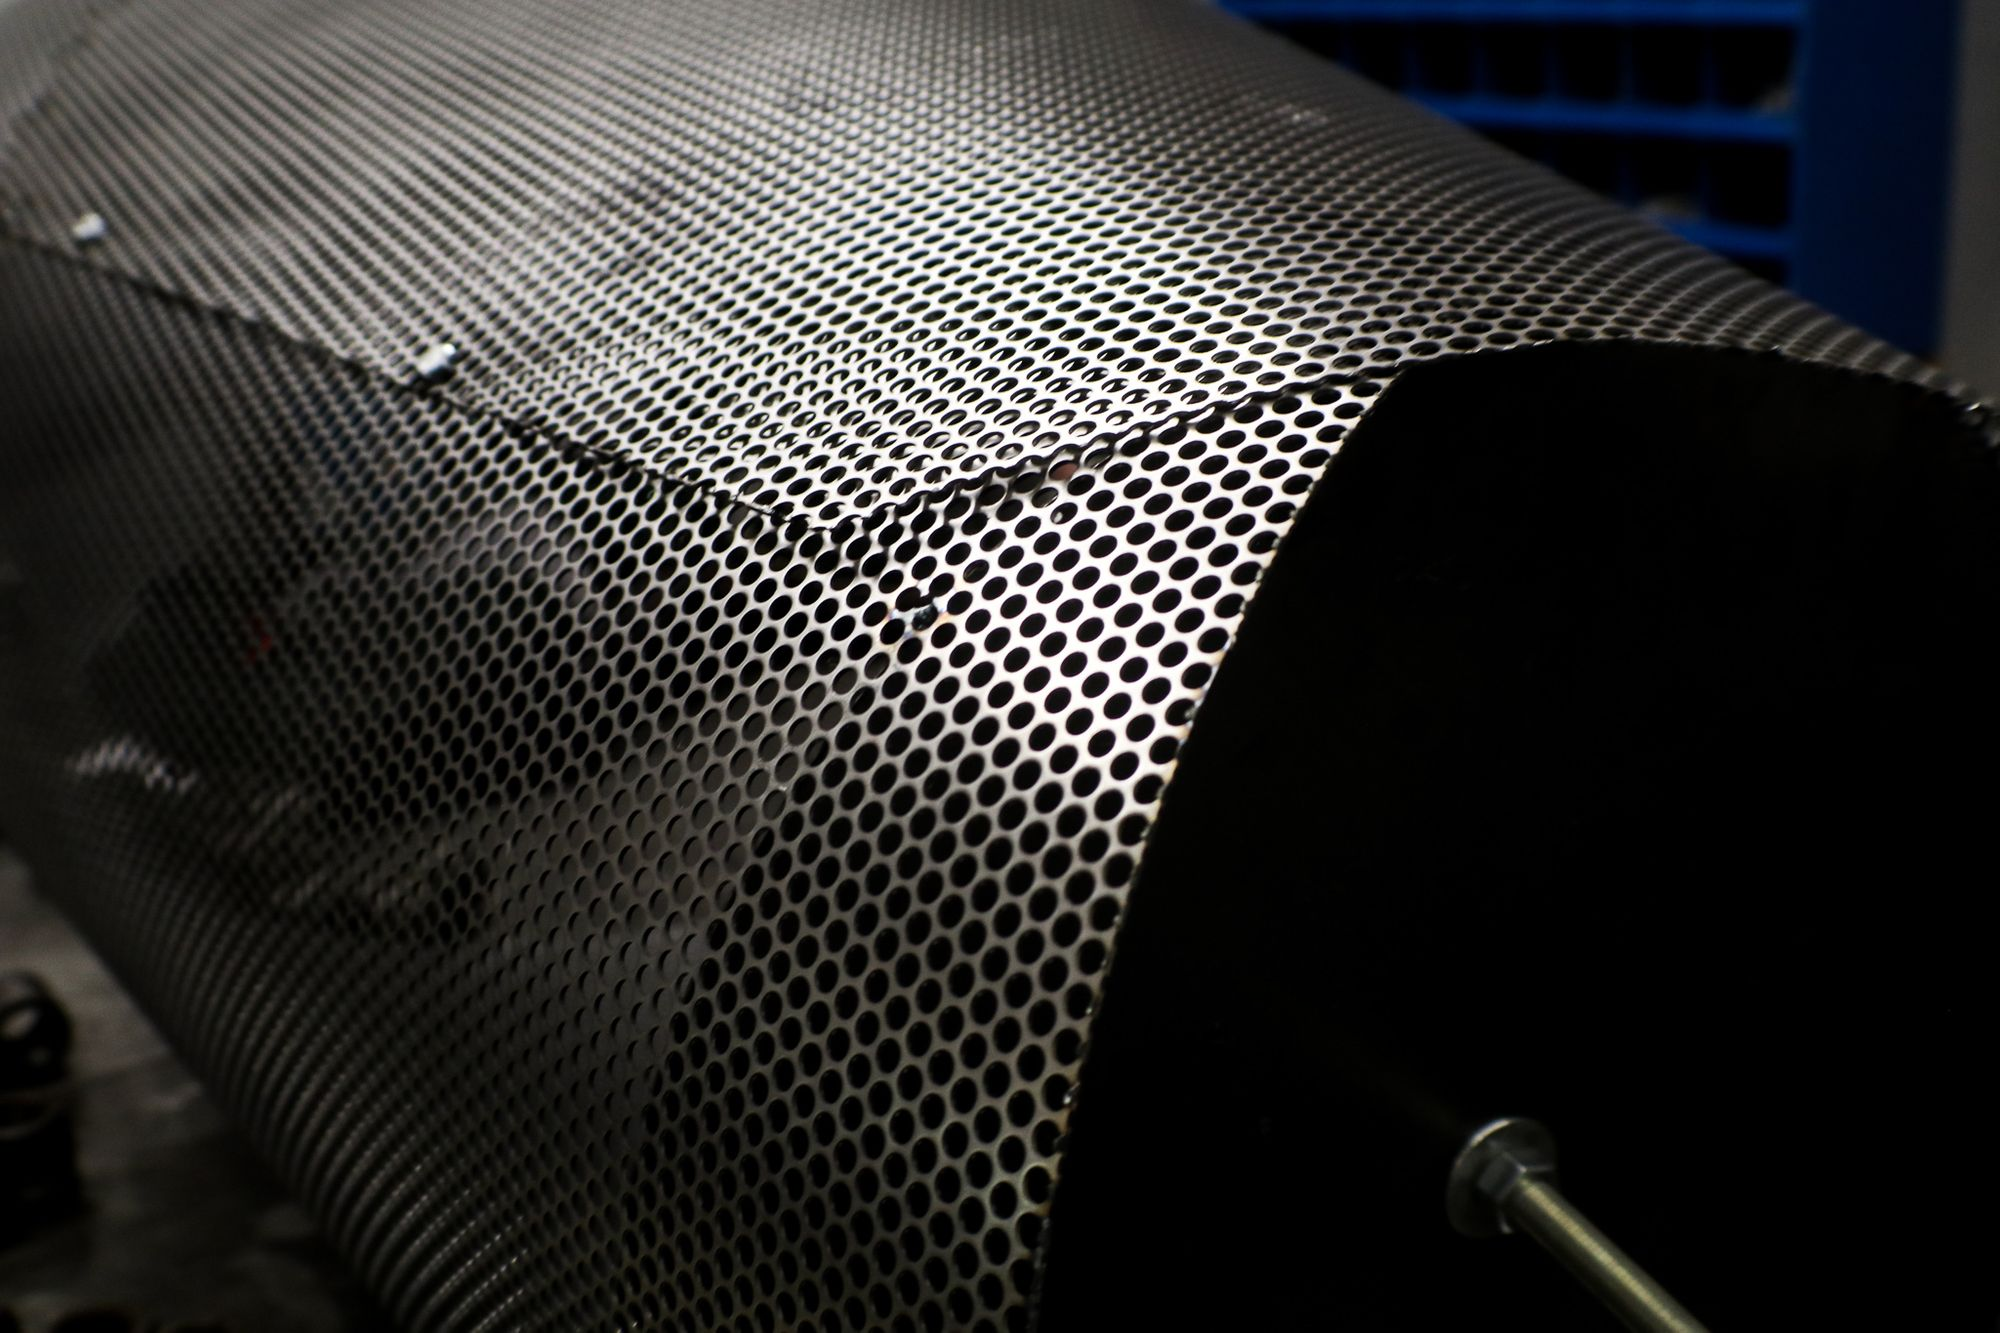 Perforated Metal being molded into lighting fixture design